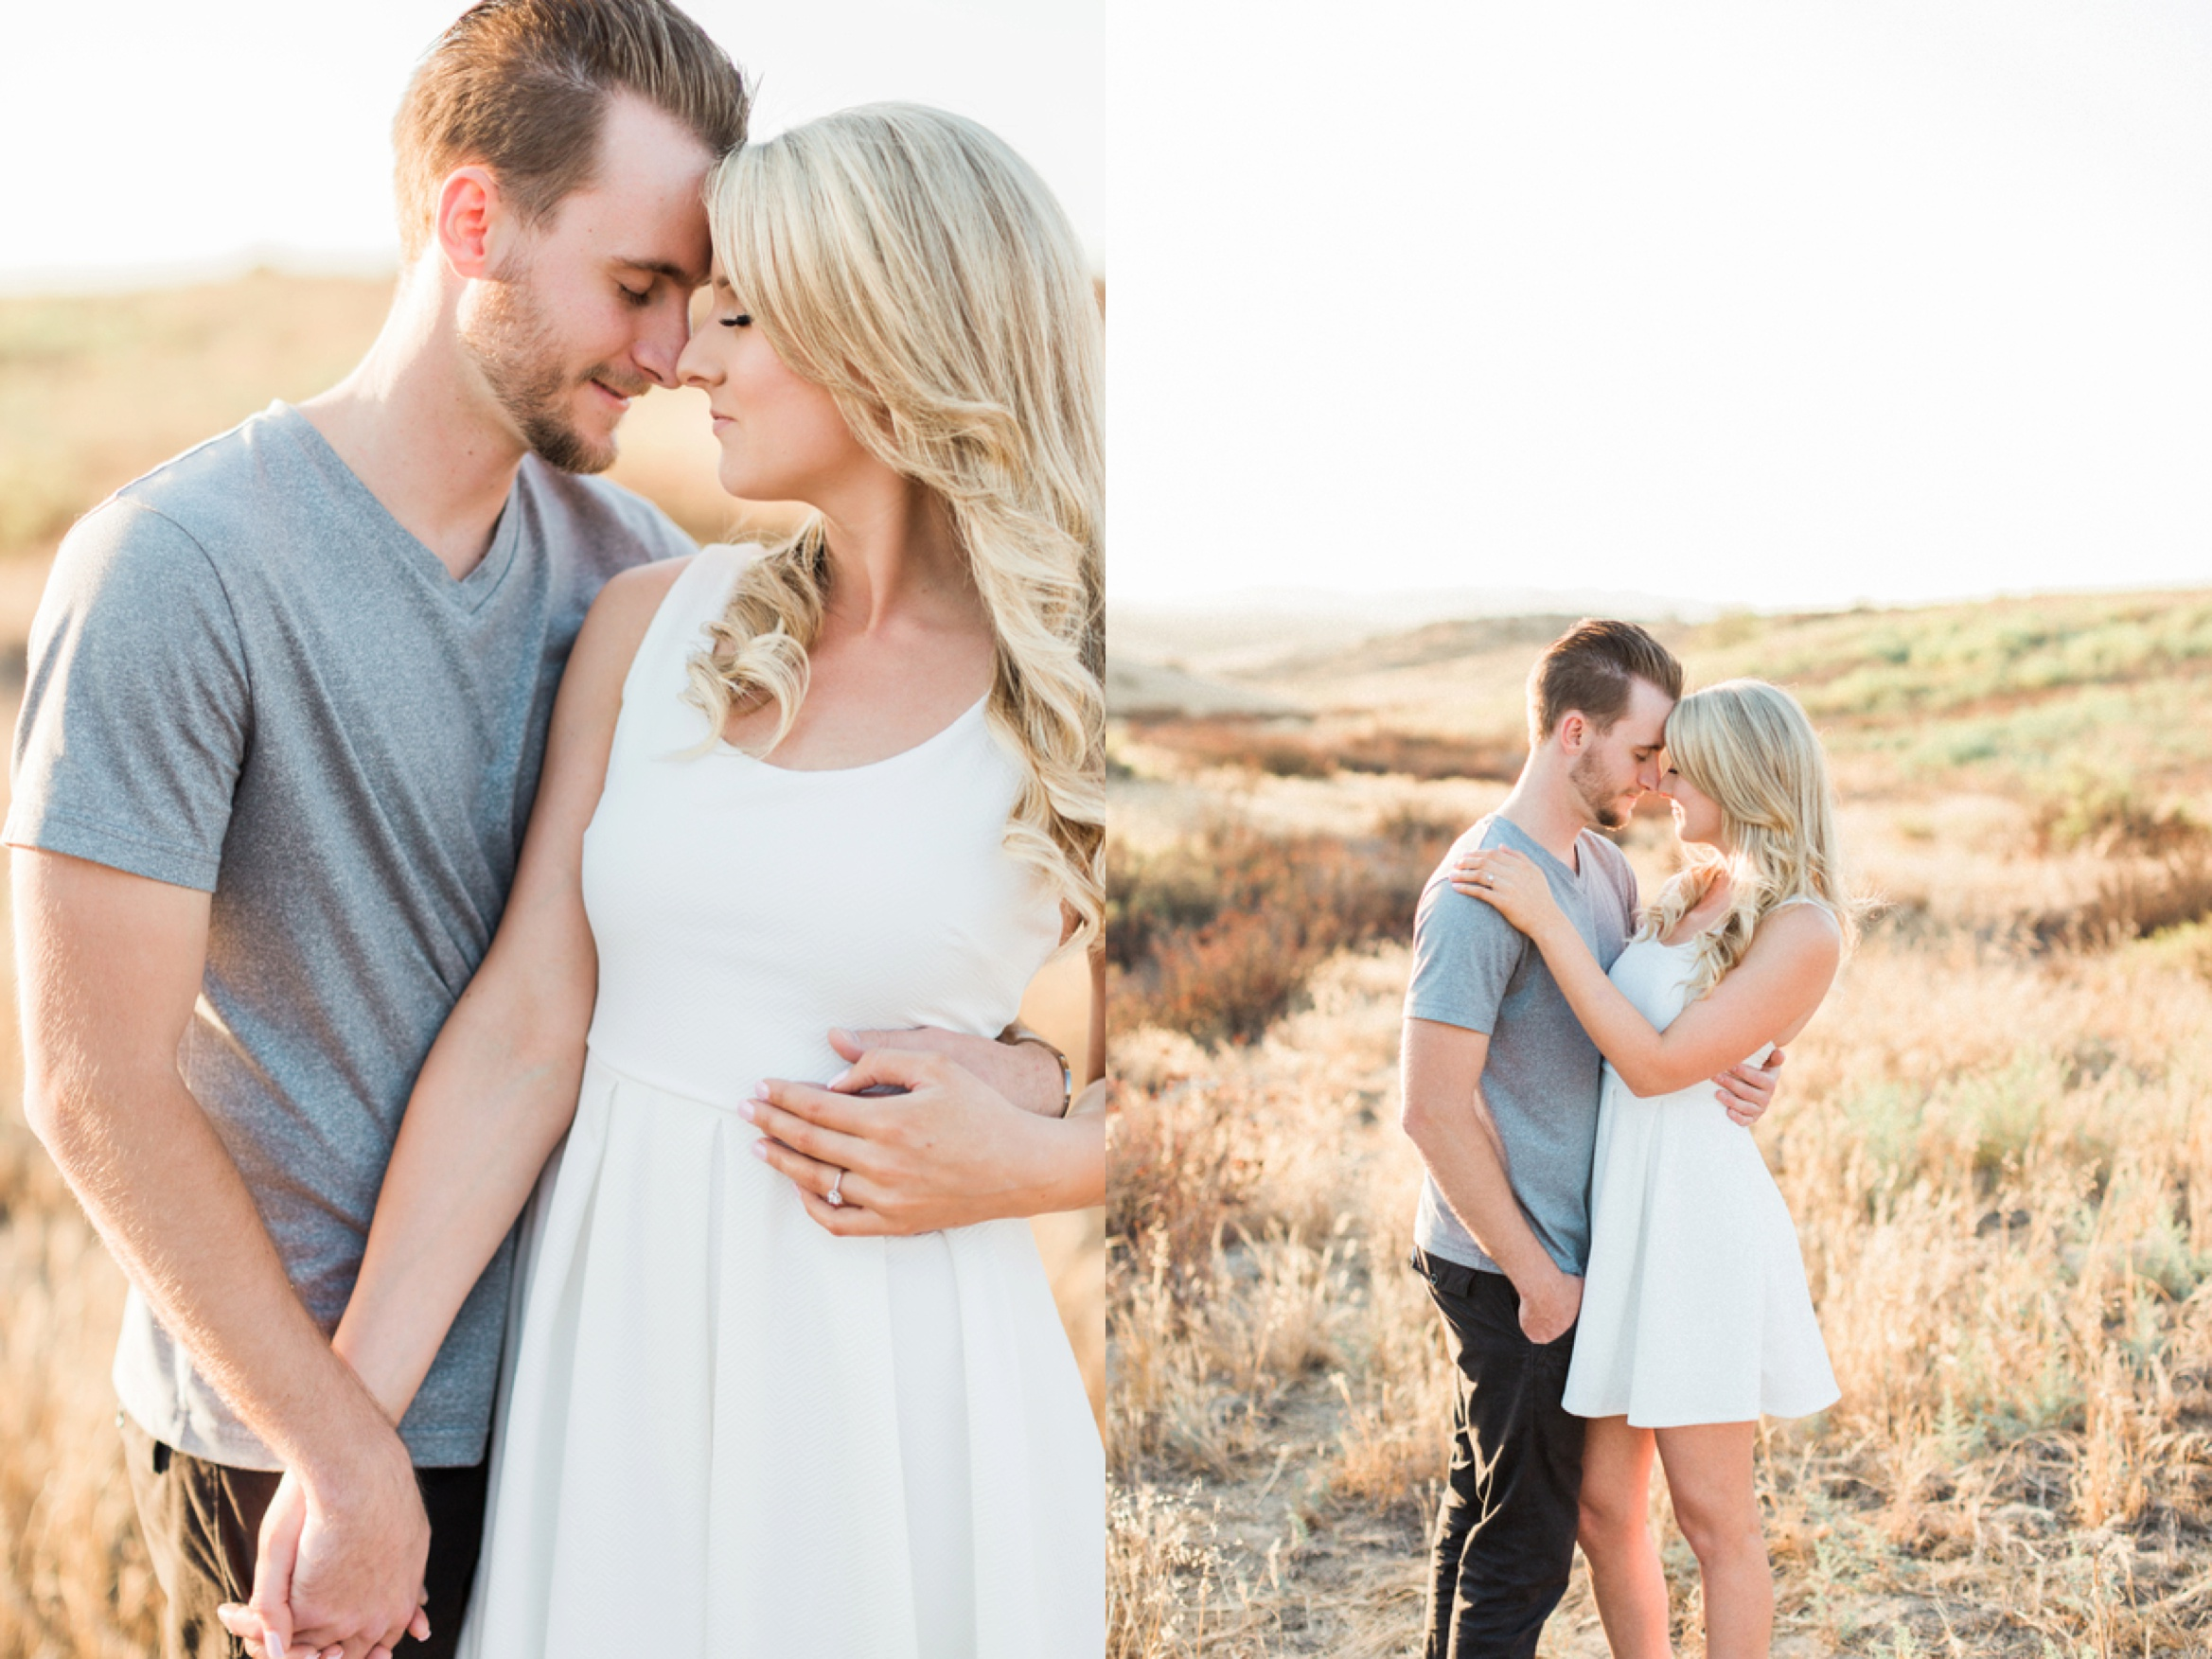 engagement pictures, couple poses, Sunfilled California Engagement Session